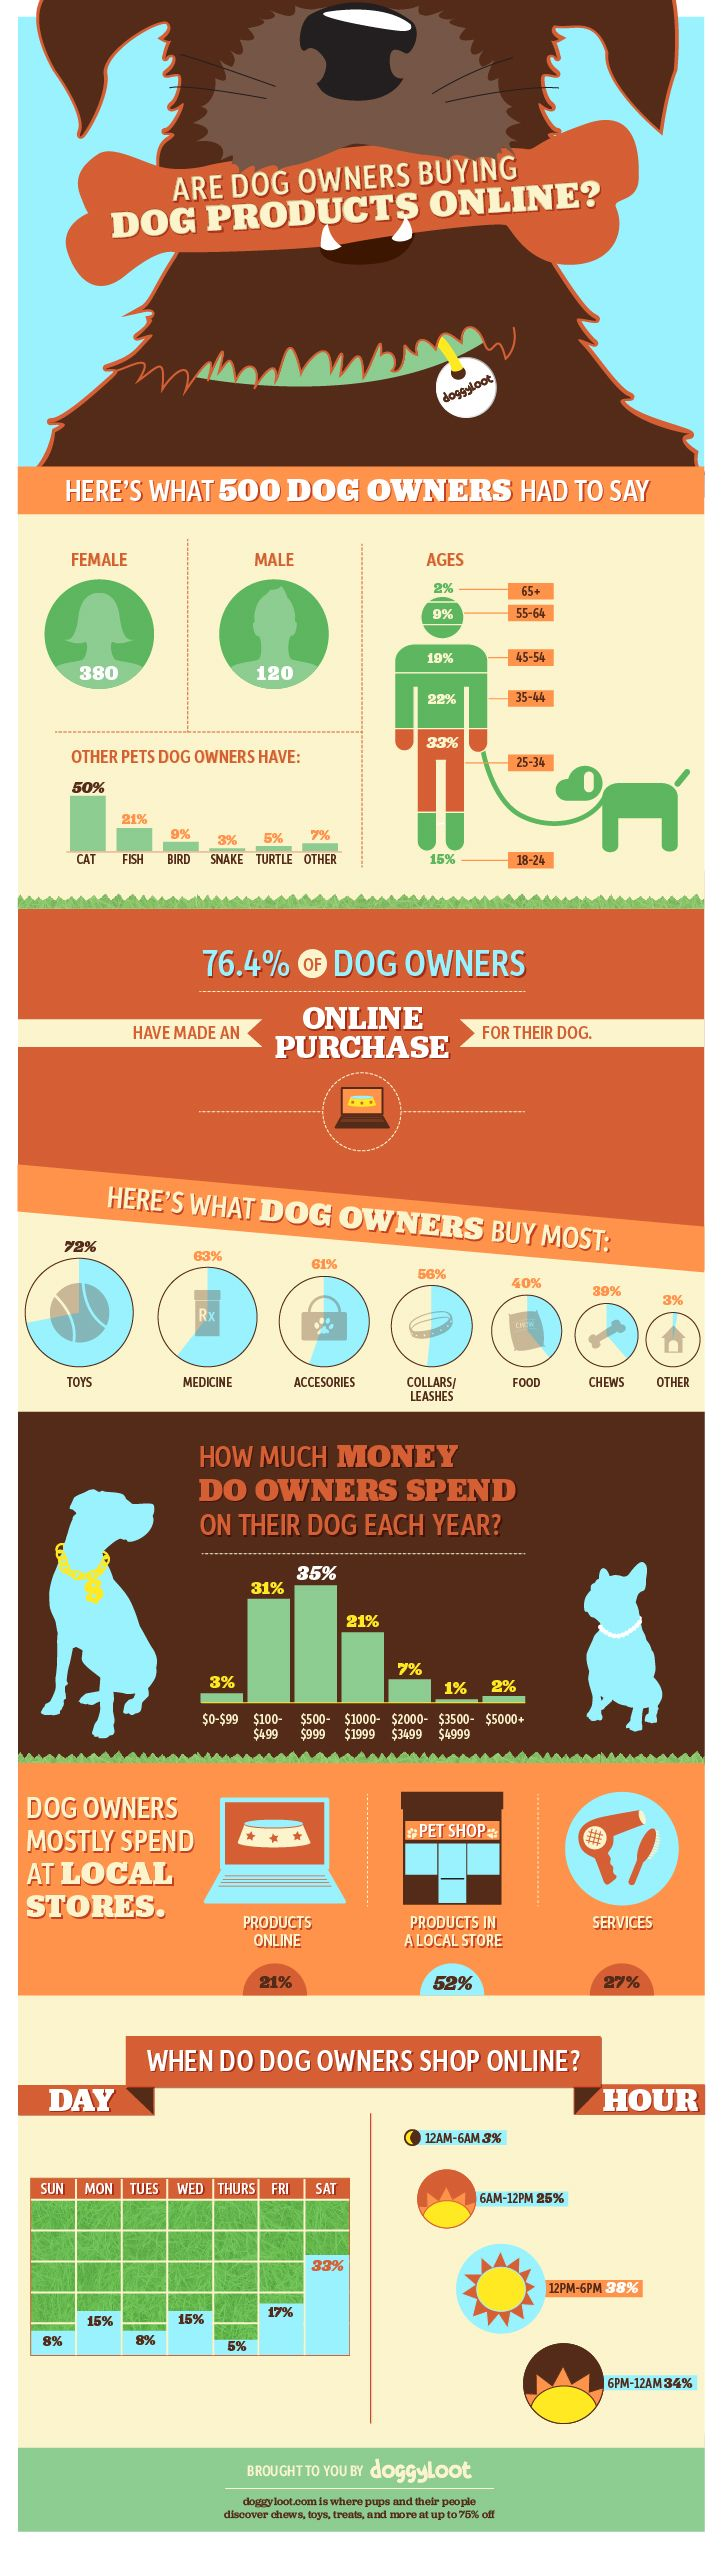 Doggyloot 12 Years After Pets Com Is Now The Time For Online Sales Of Pet Products Dog Owners Dog Marketing Dog Infographic